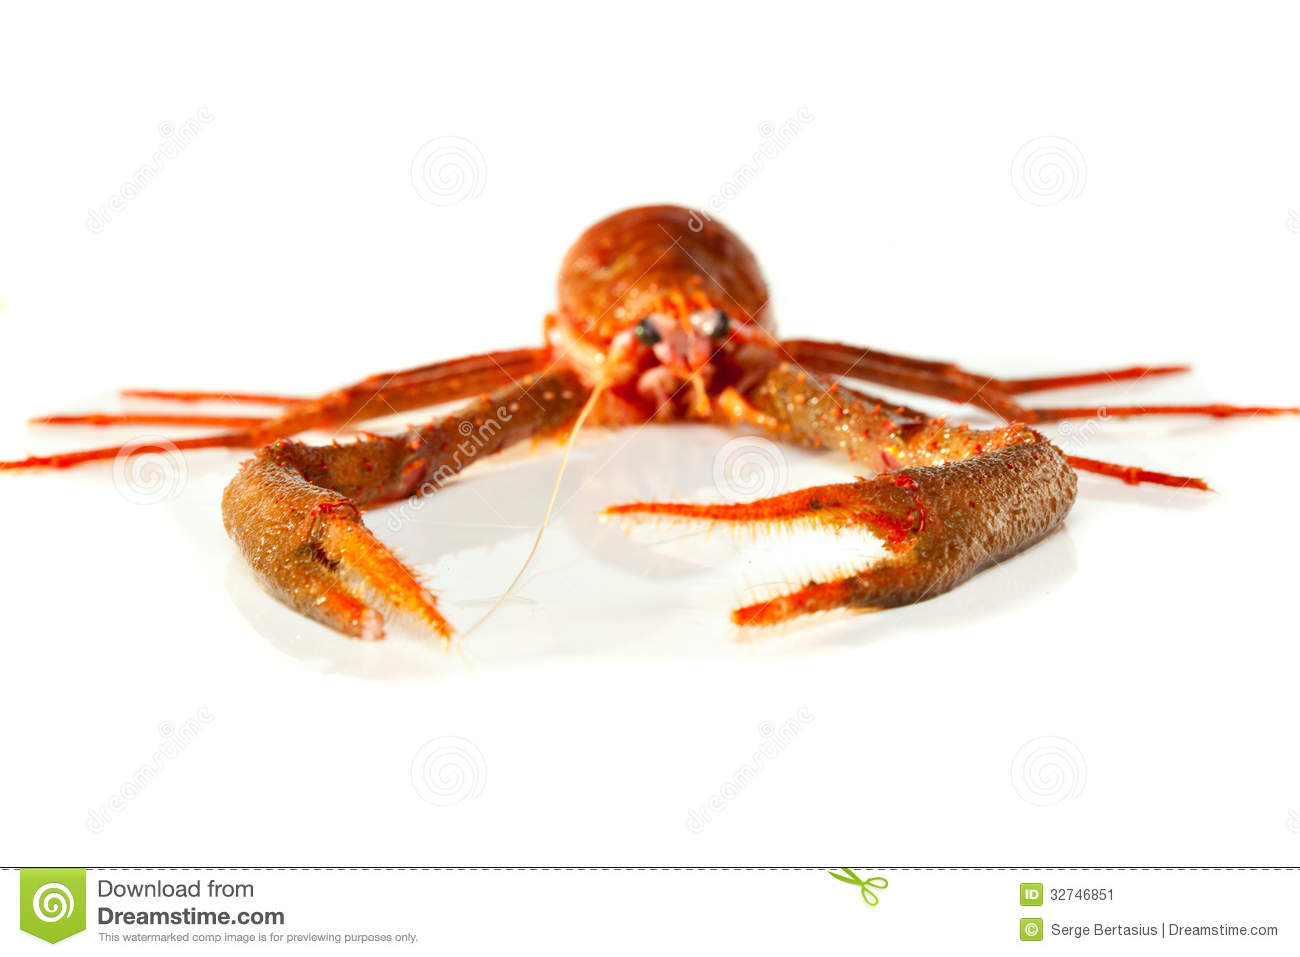 Langoustine stock image. Image of crustacean, claw, spiny - 32746851